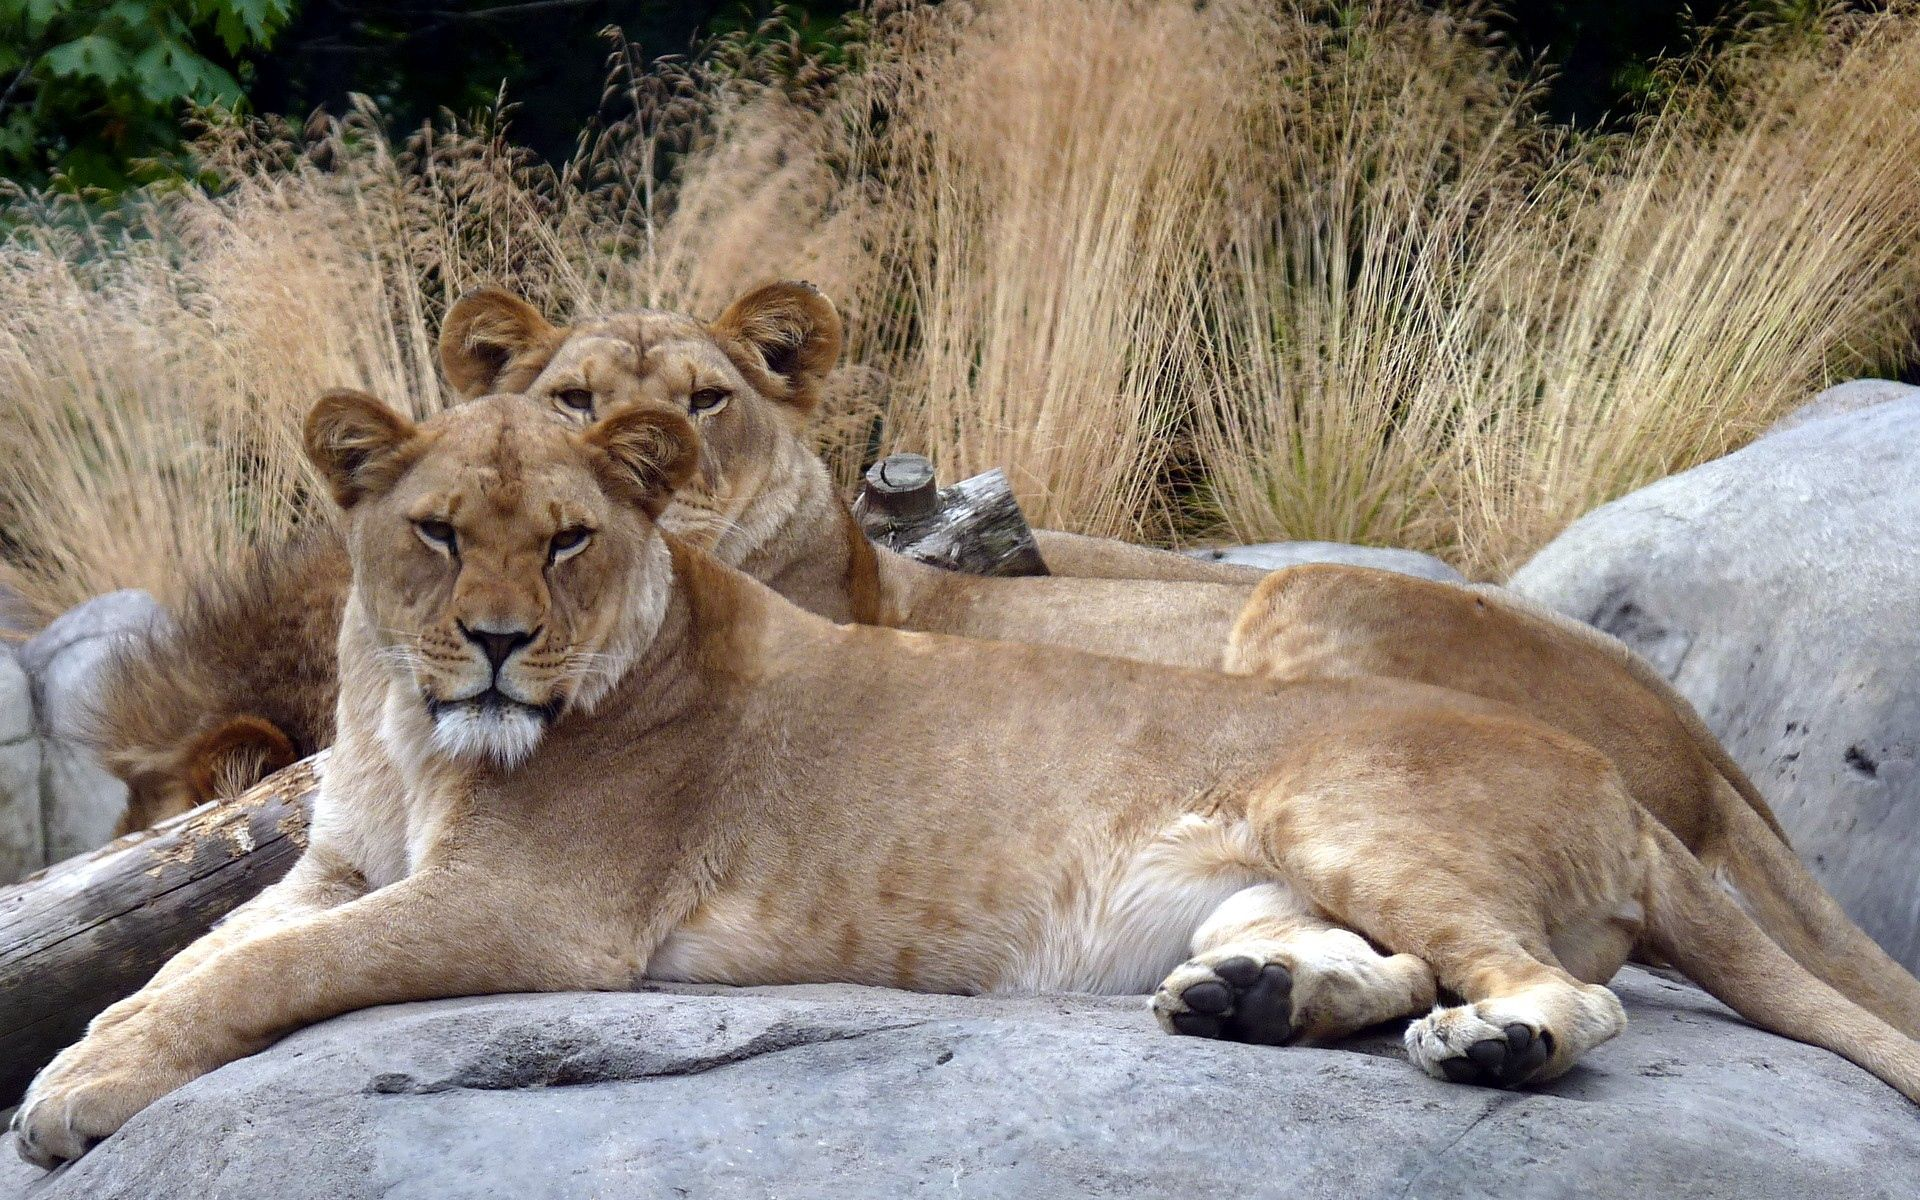 106231 download wallpaper Animals, Couple, Pair, Stones, To Lie Down, Lie, Grass, Lions screensavers and pictures for free